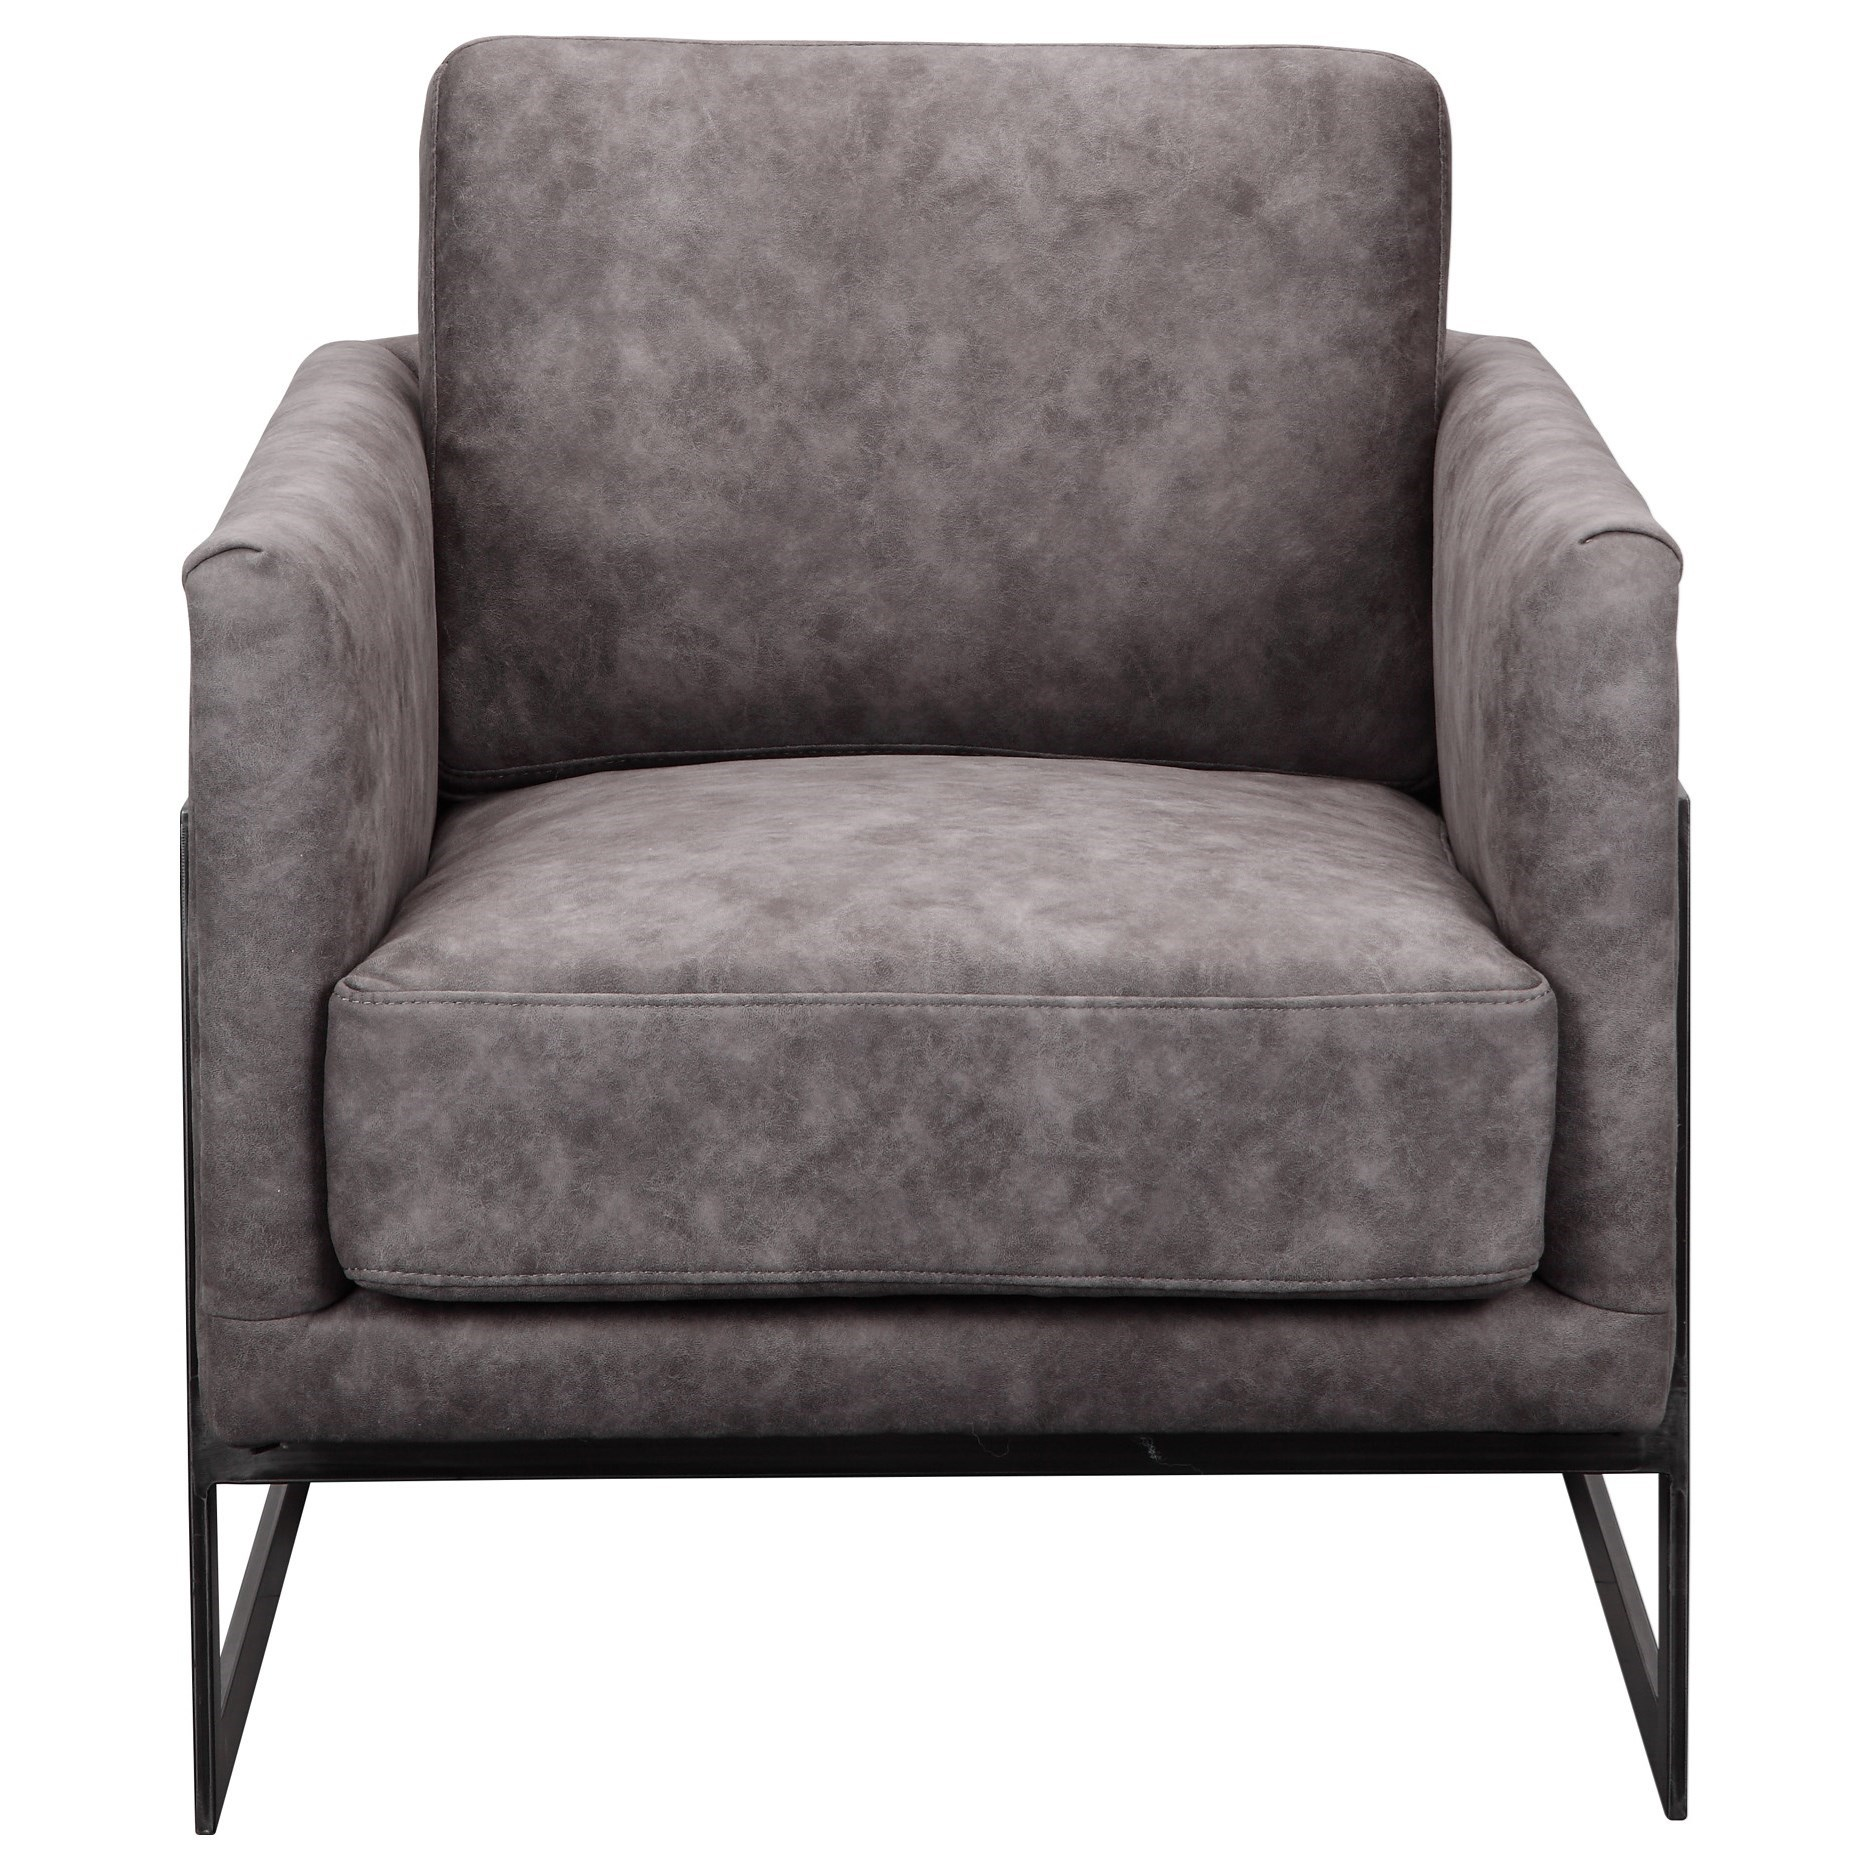 Luxe Club Chair Grey Velvet by Moe's Home Collection at Stoney Creek Furniture